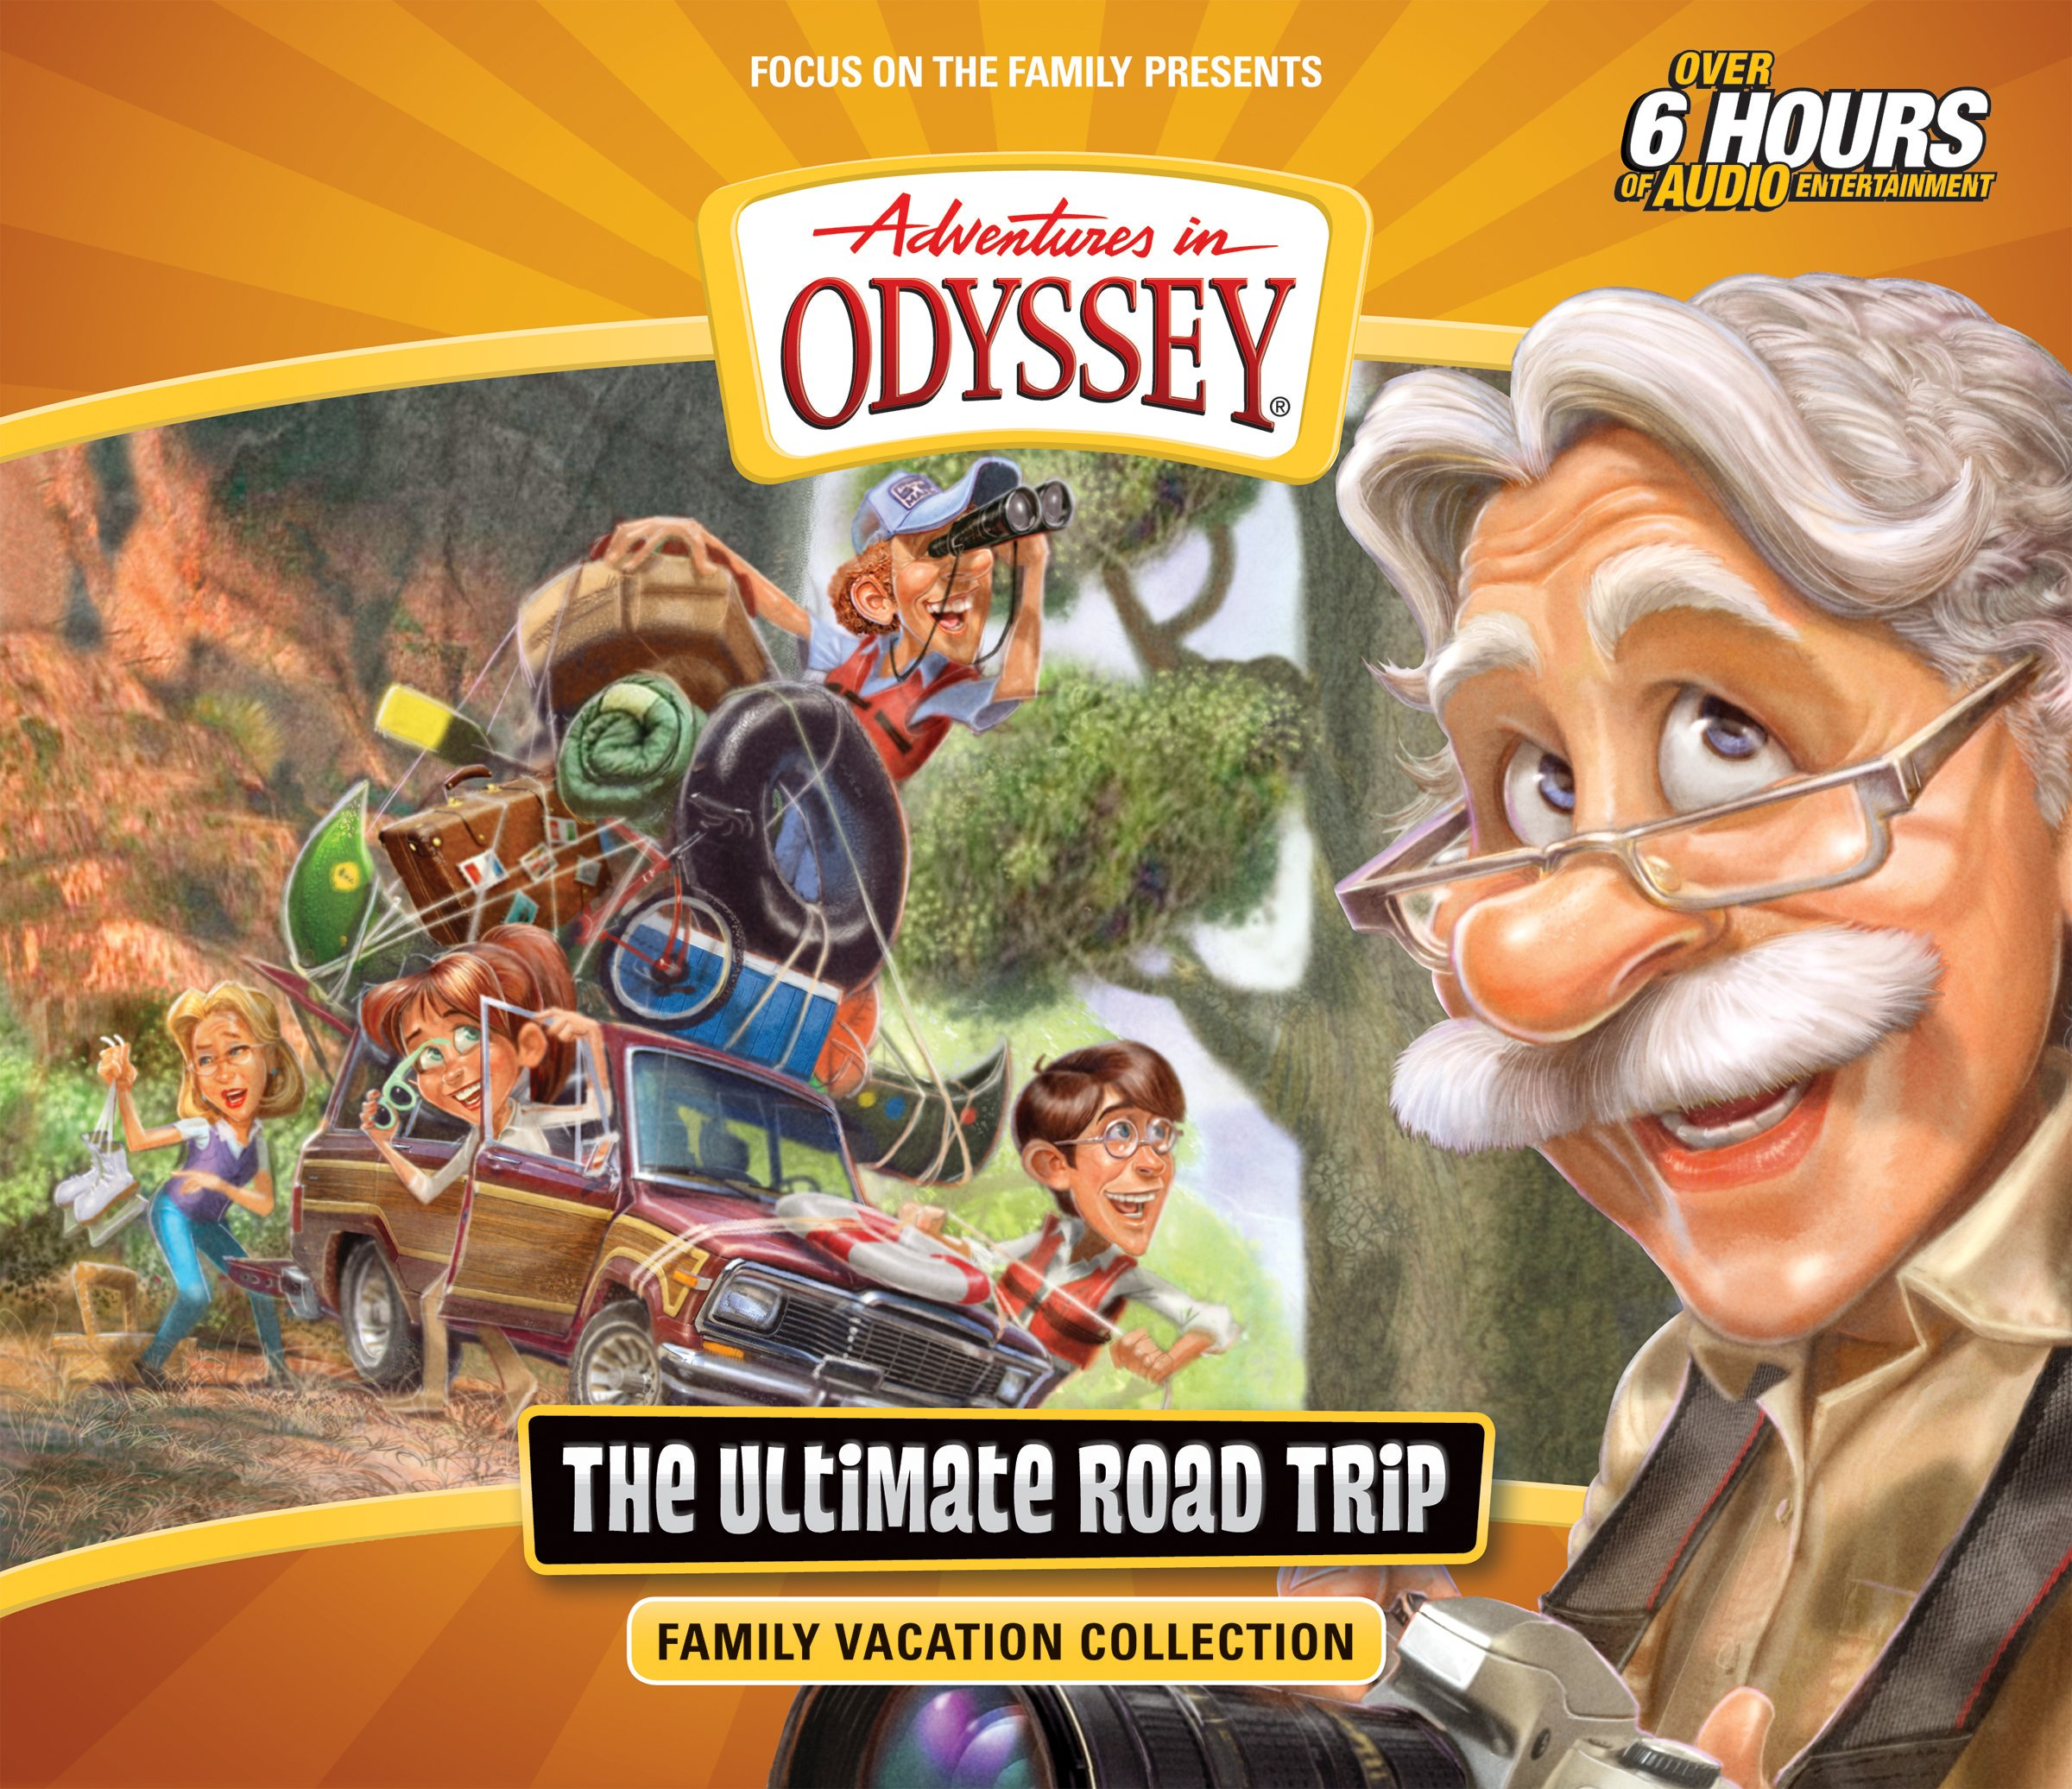 The Ultimate Road Trip: Family Vacation Collection (Adventures in Odyssey) by Tyndale House Publishers (Image #1)